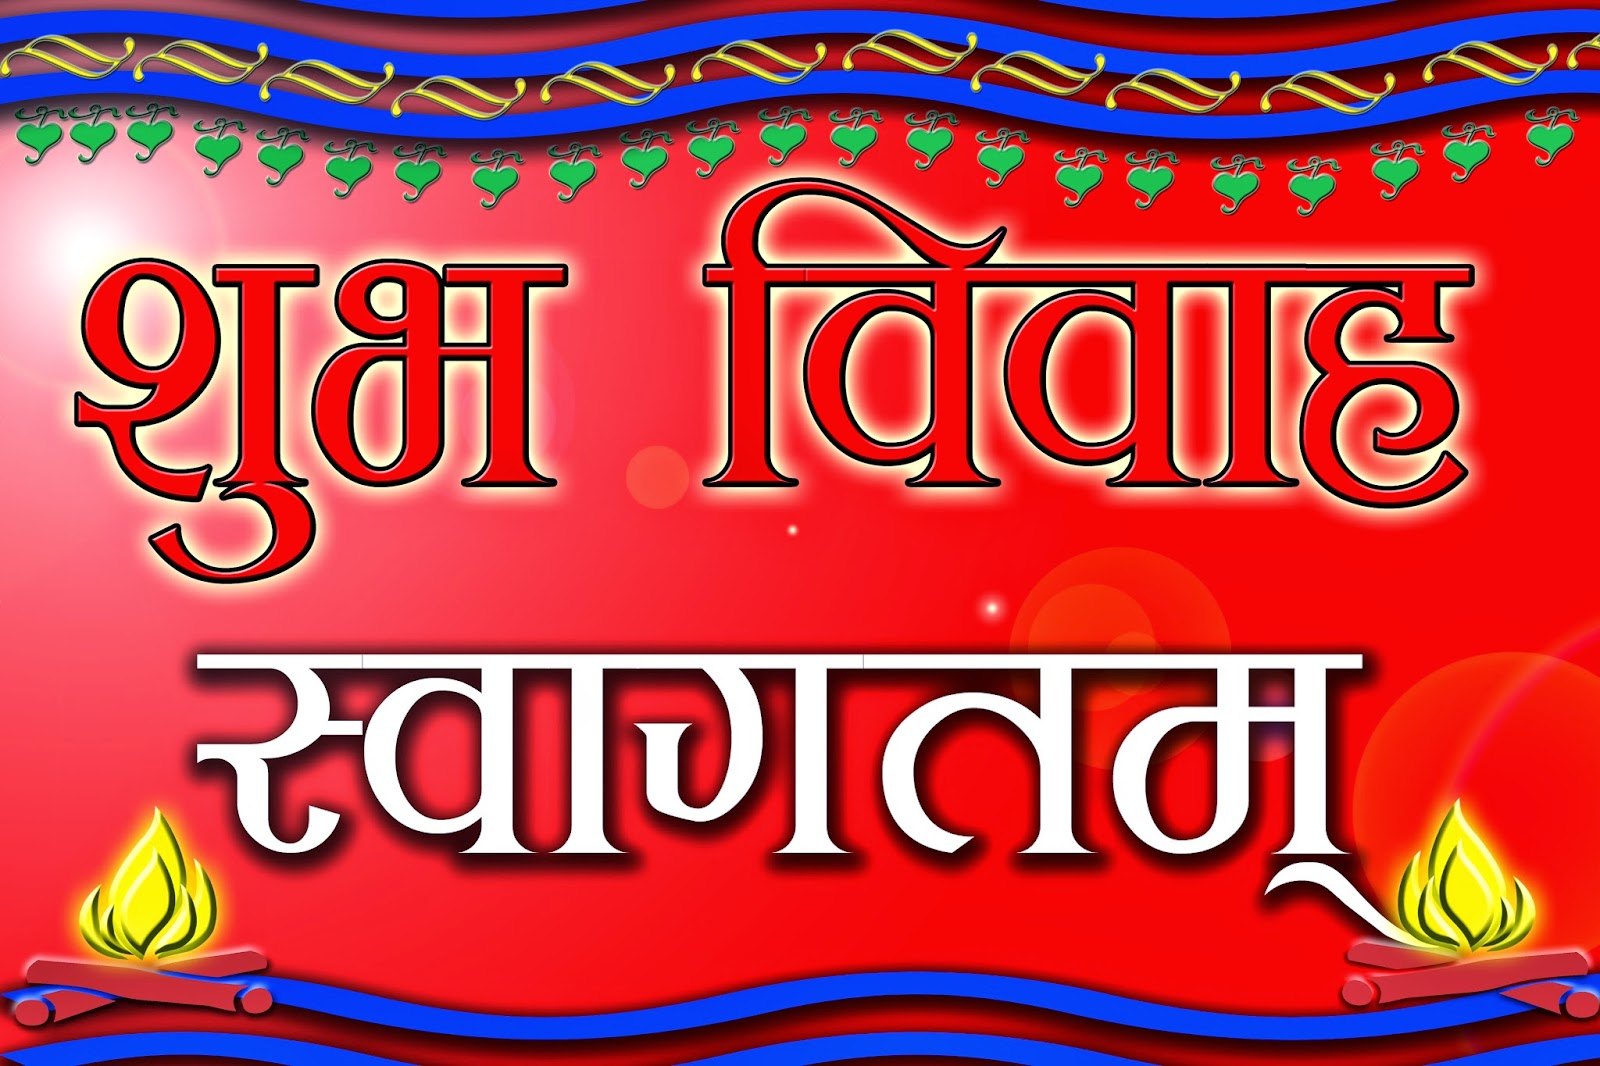 happy wedding nepali banner 2x3 suva biwaha happy wedding nepali banner 2x3 suva